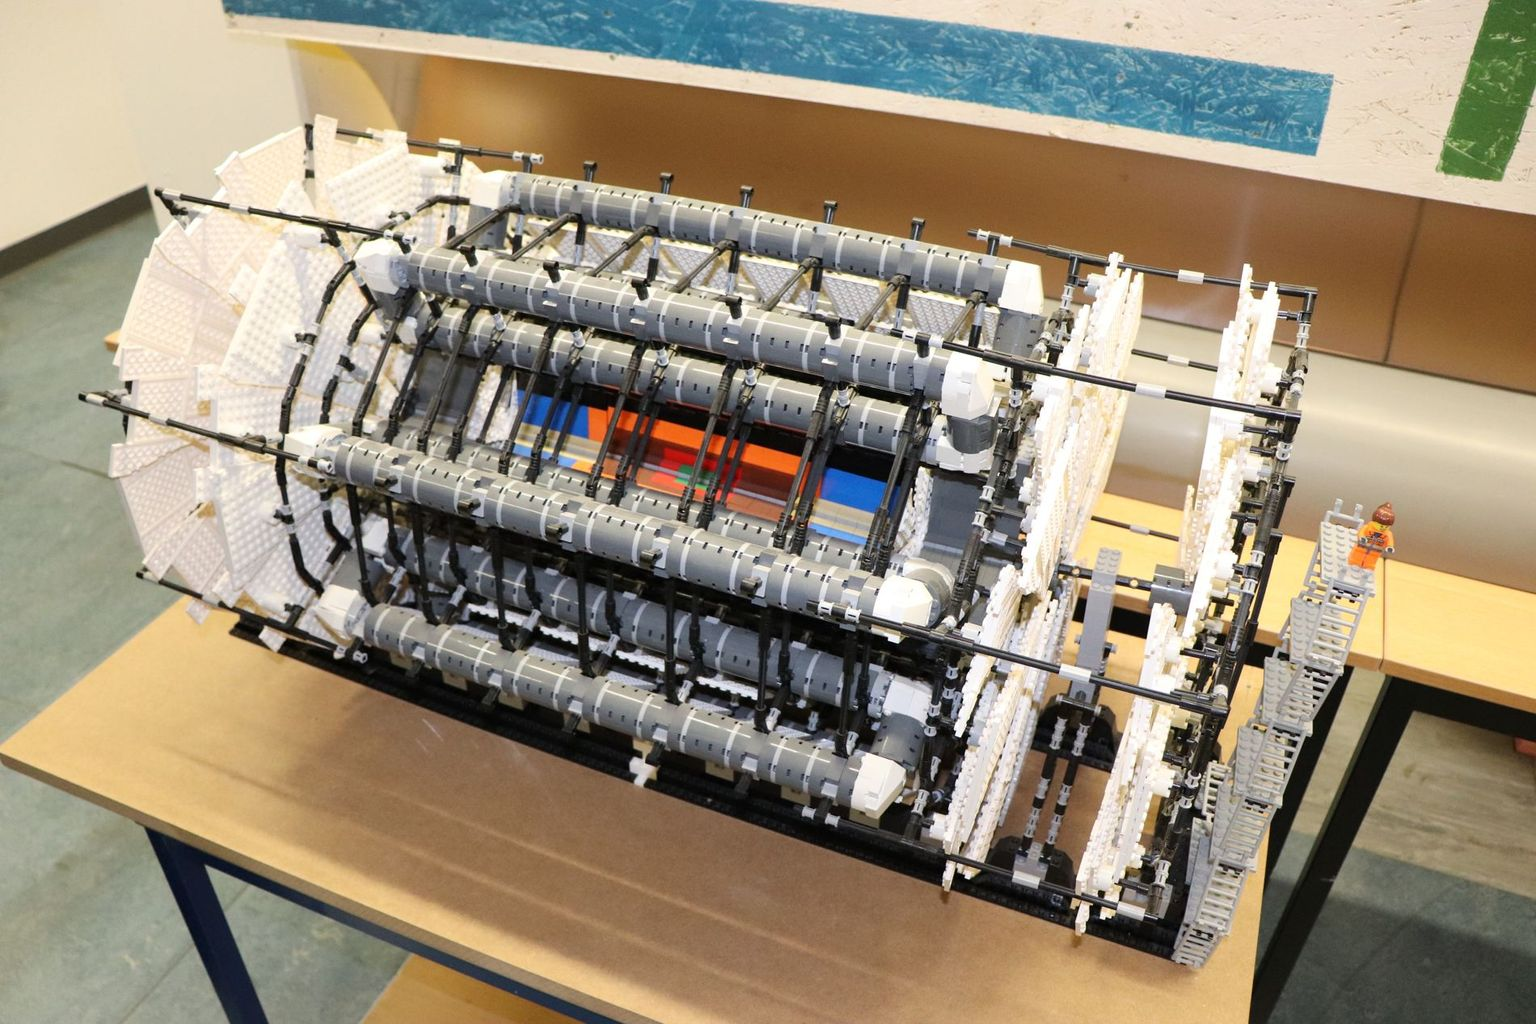 In the laboratory where Armin Fehr works, Lego bricks are used to reconstruct the ATLAS detector in miniature. With the detector the traces of the smallest particles can be detected at CERN. The red and green component inside the detector mark the location where the 'Inner Tracker' with the new Optoboards will be placed.